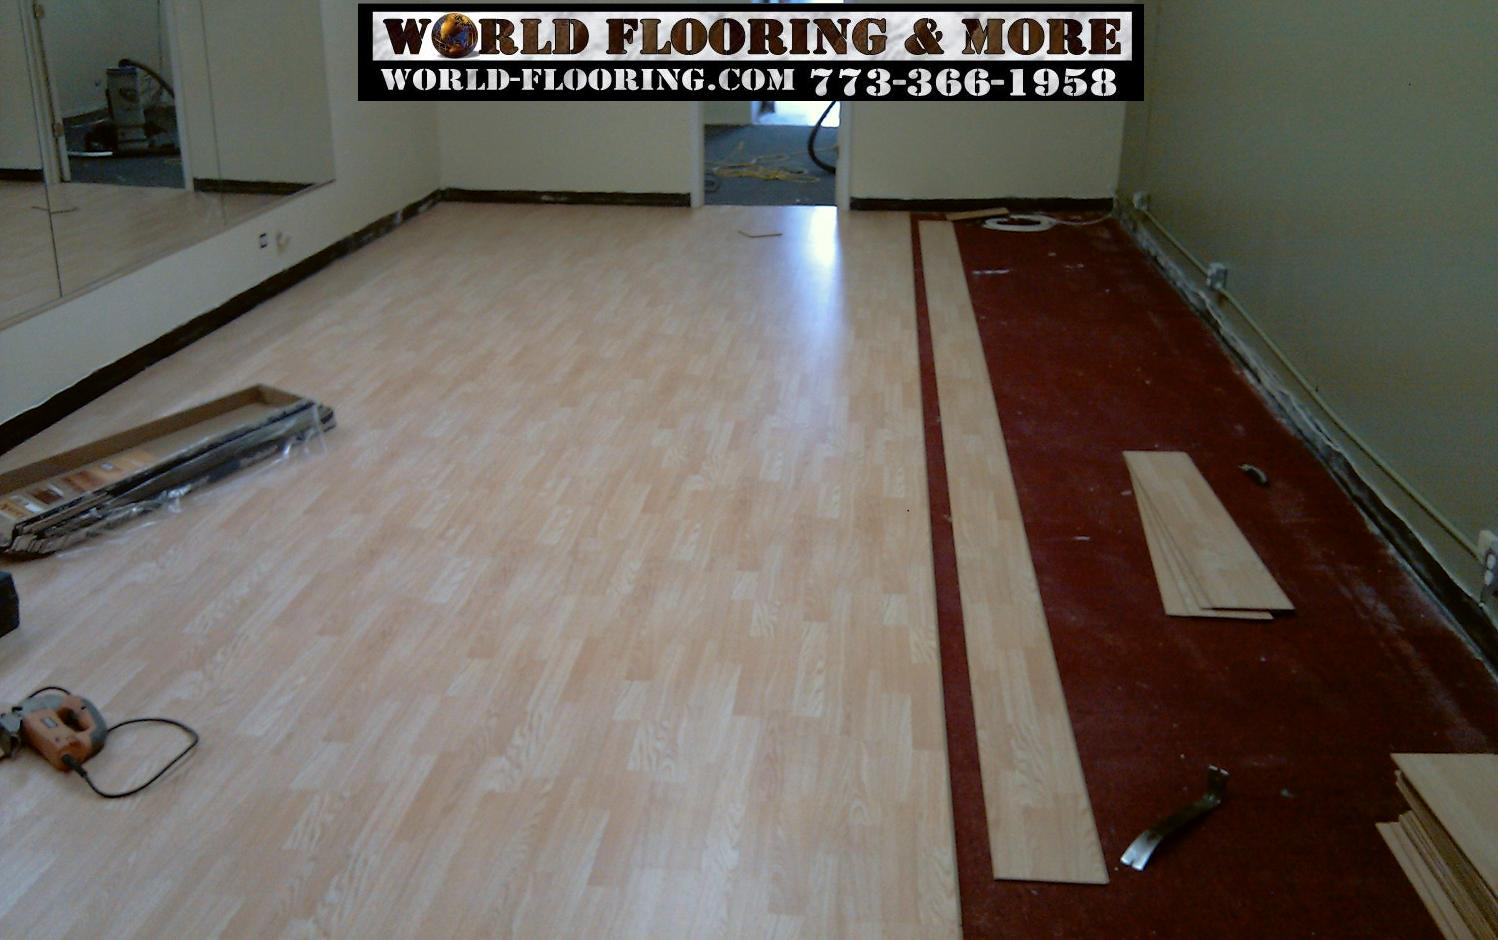 Laminate Flooring Installation Pre Finished Floor World More 773 366 1958